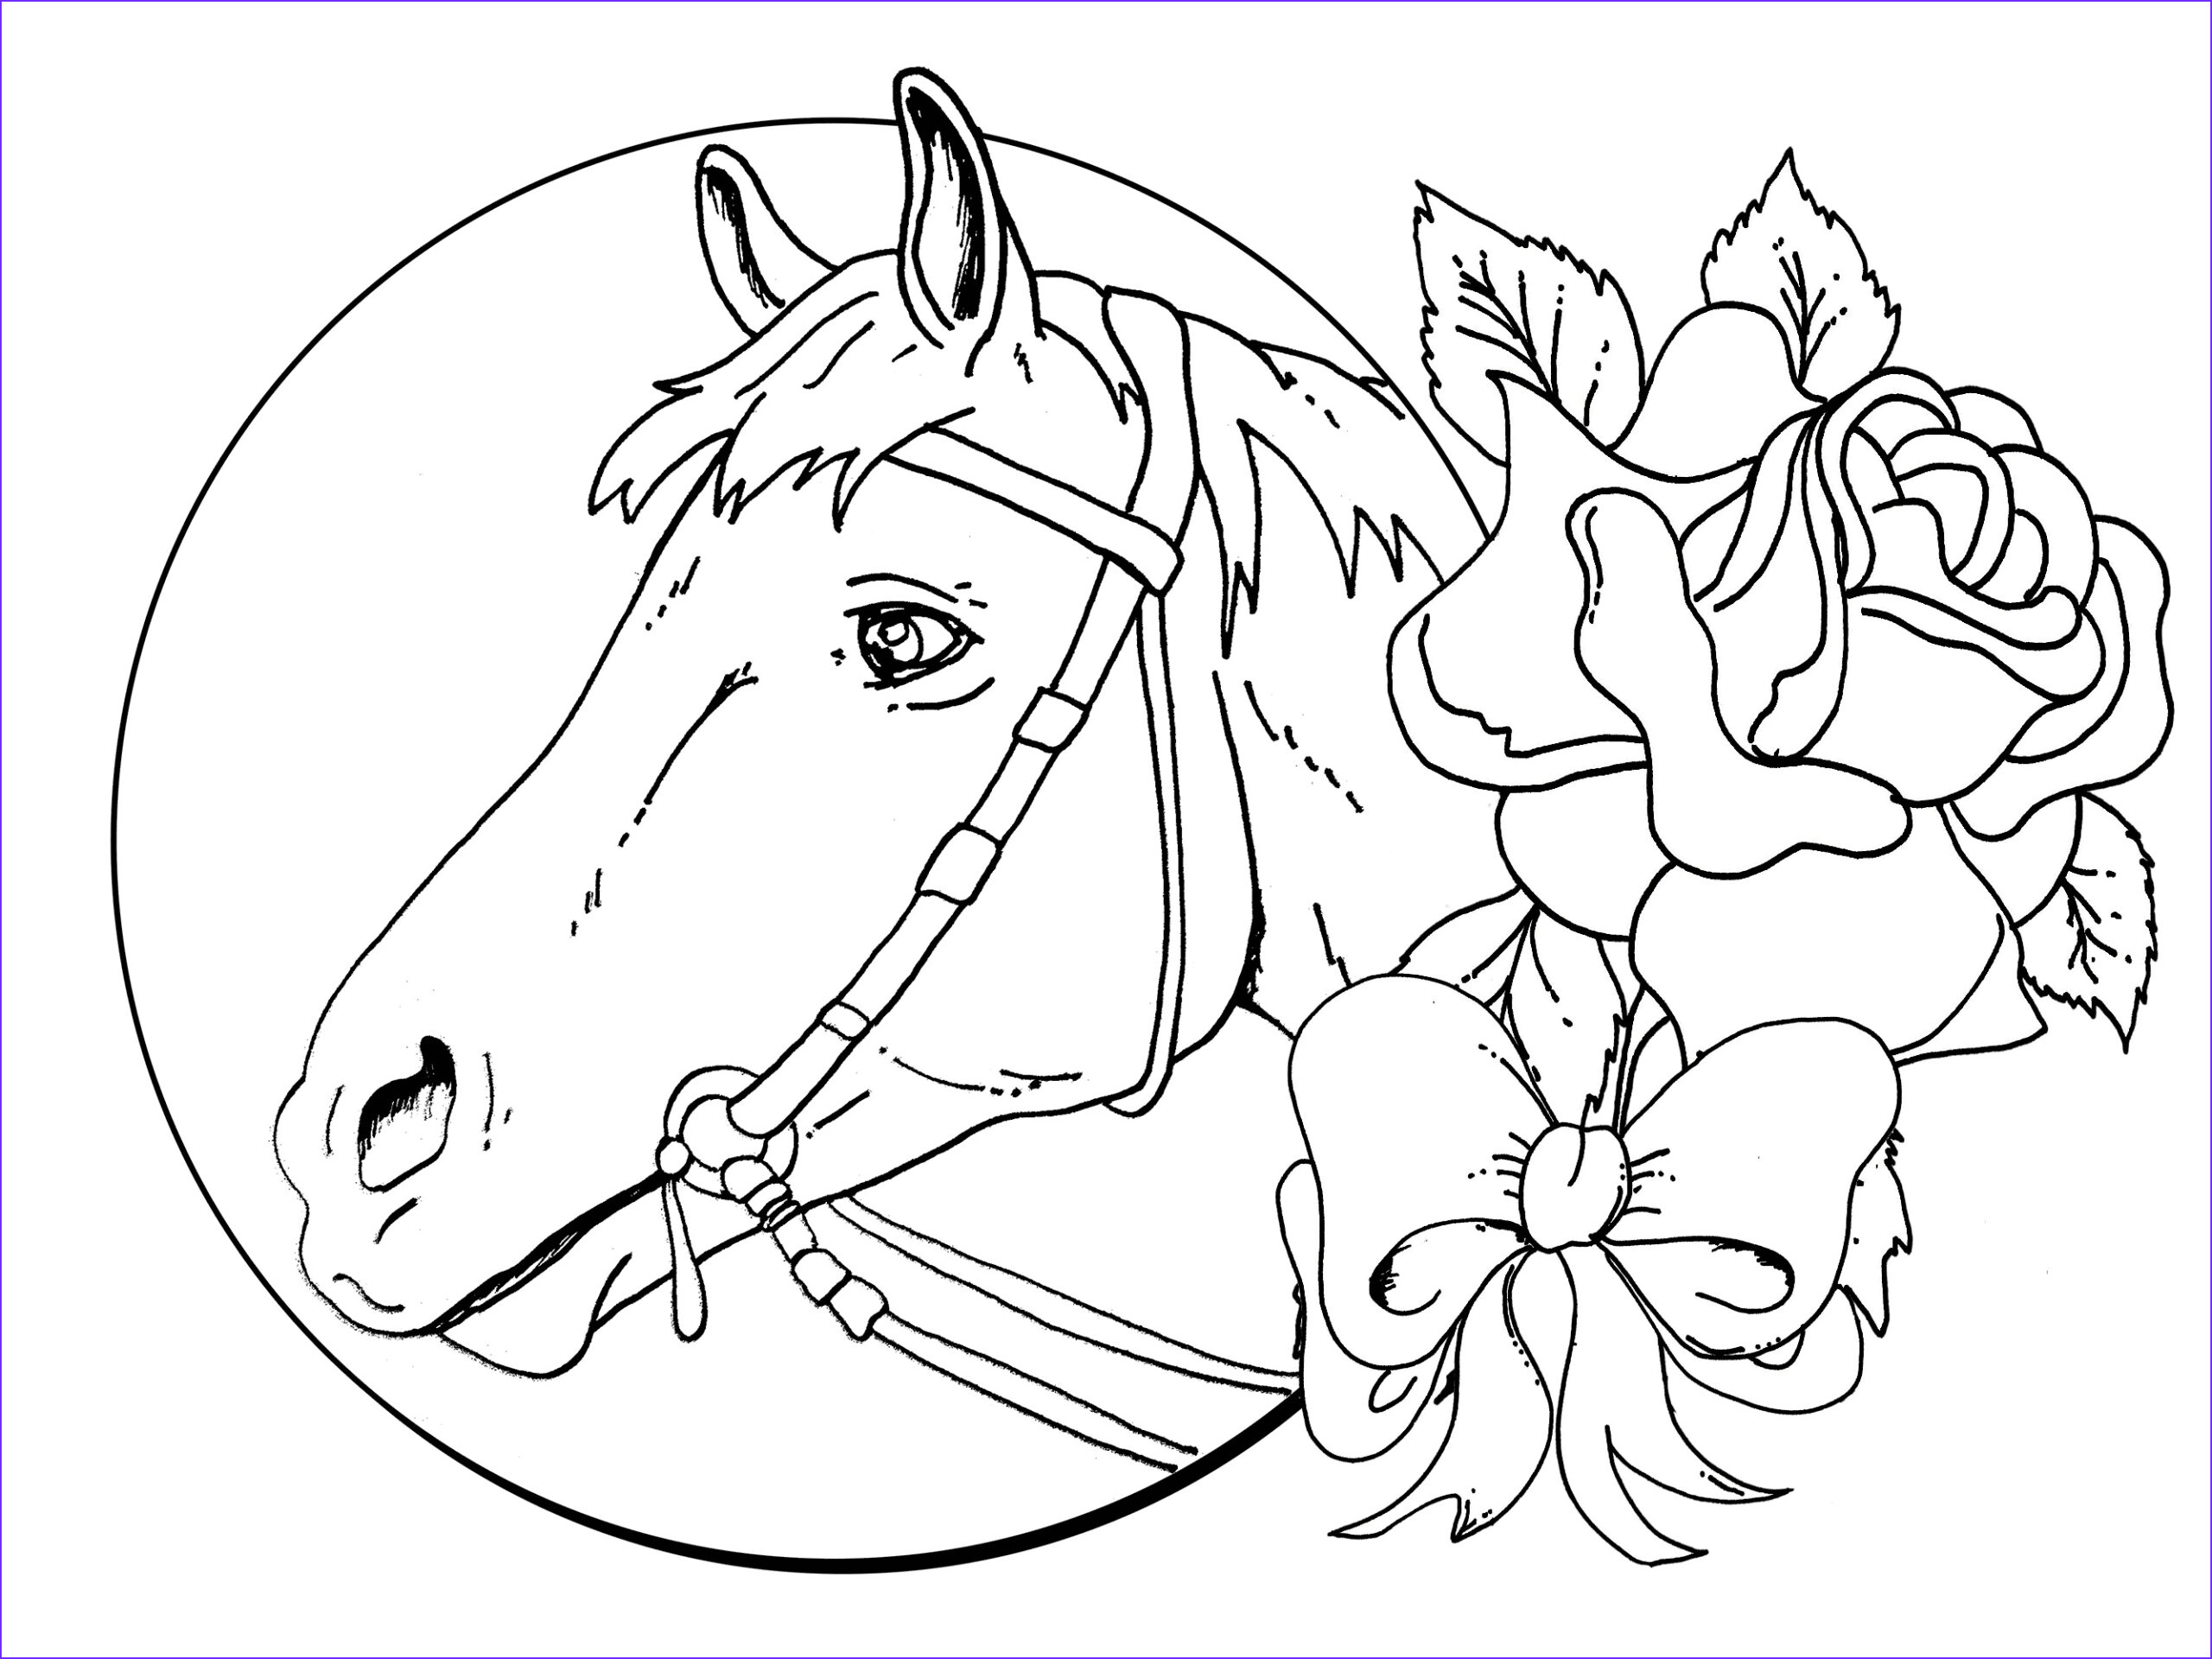 Adult Coloring Pages Horse Cool Images Coloring Pages Horses Coloring Pages Free Coloring Pages